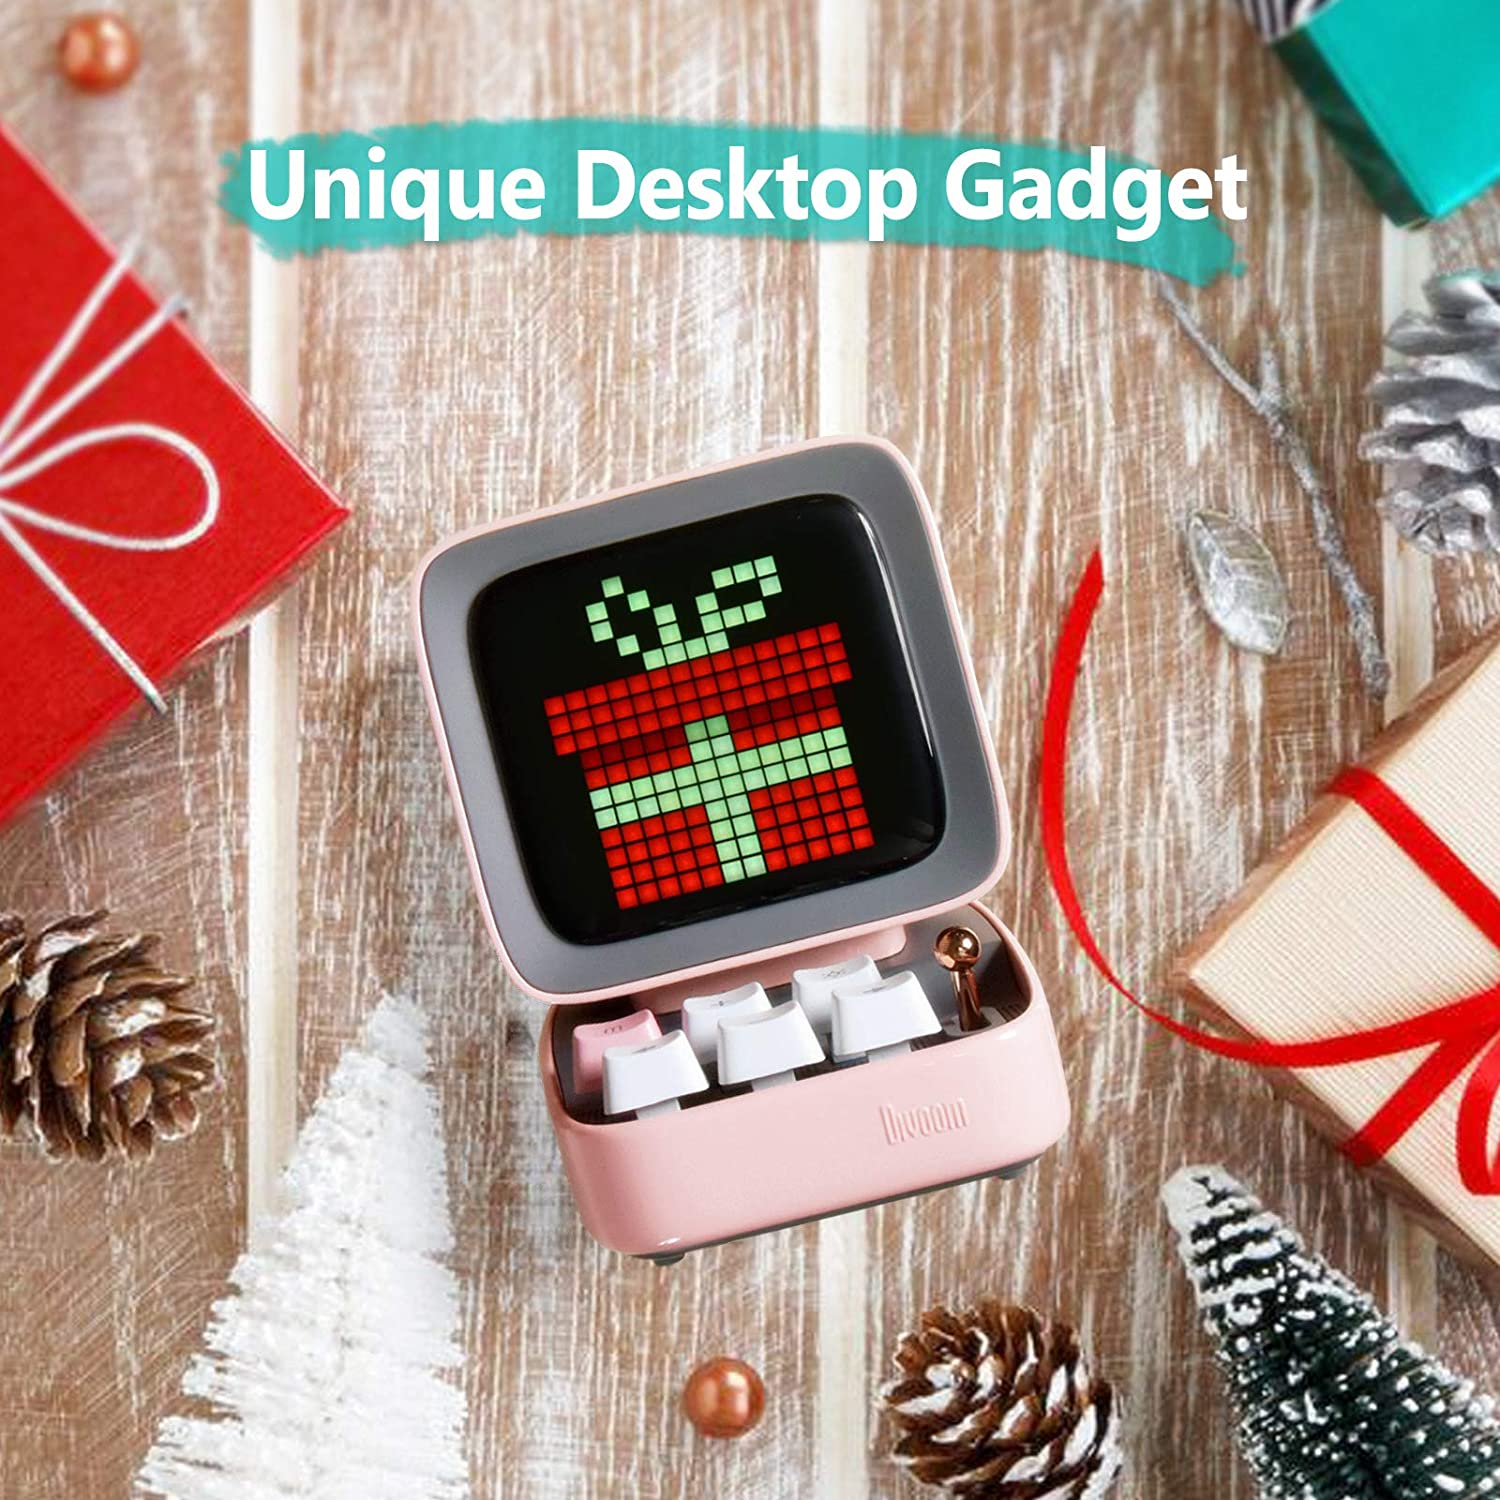 /… Blue Divoom Ditoo Retro Pixel Art Game Bluetooth Speaker with 16X16 LED App Controlled Front Screen